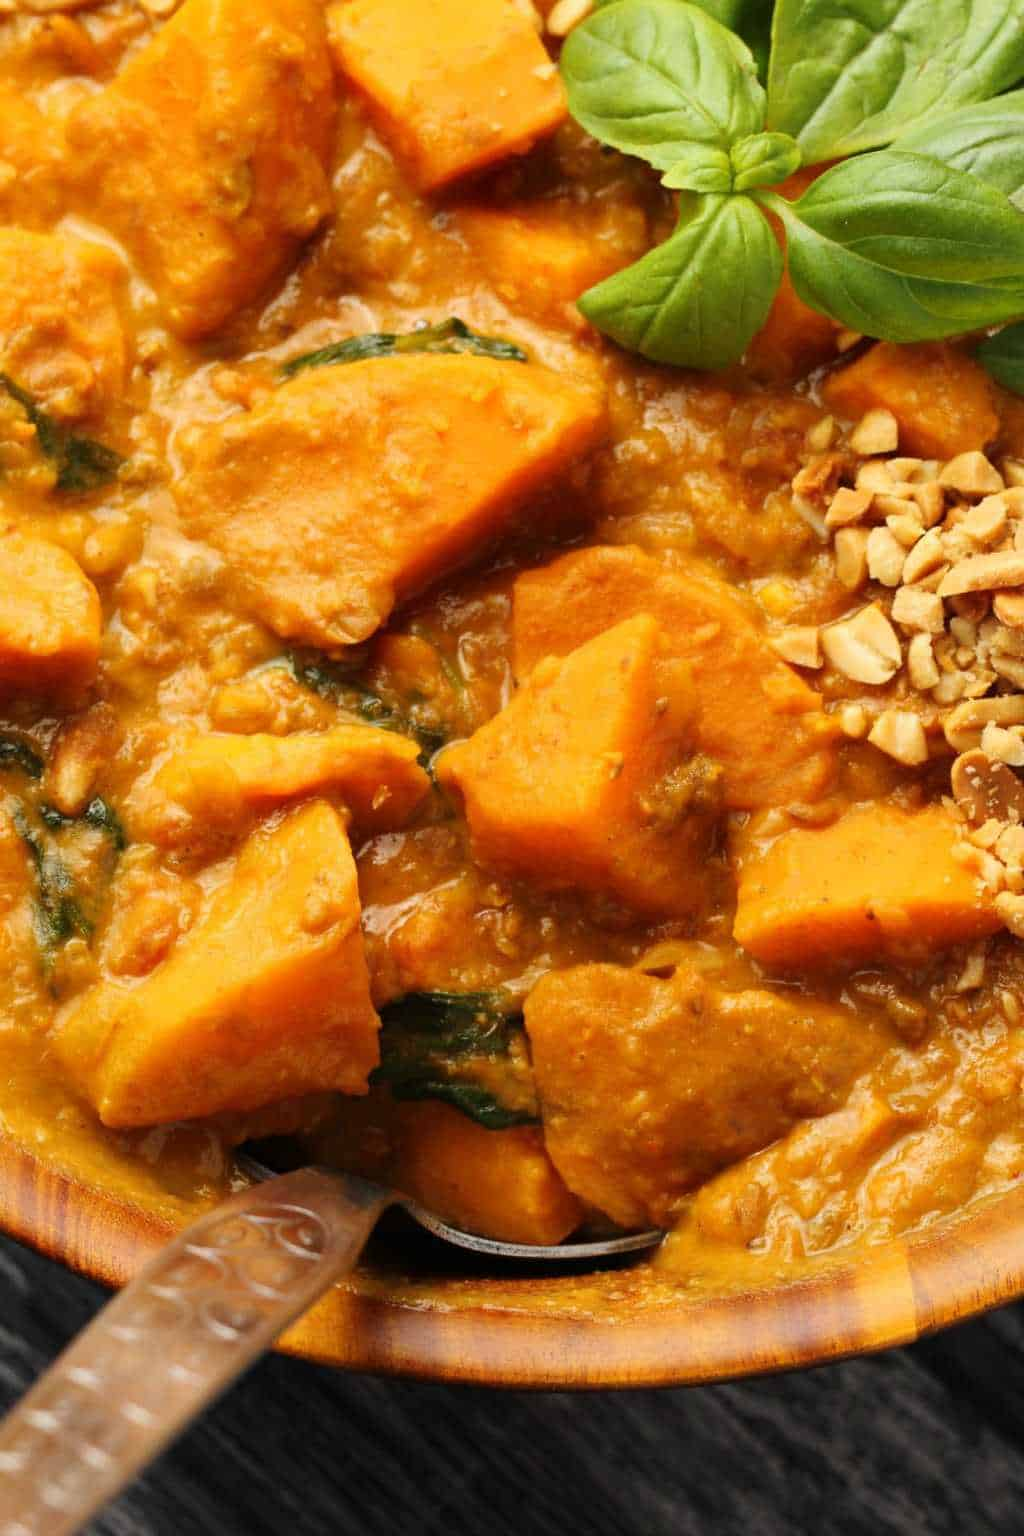 Vegan Sweet Potato Curry topped with fresh basil leaves and crushed peanuts in a wooden bowl with a spoon.